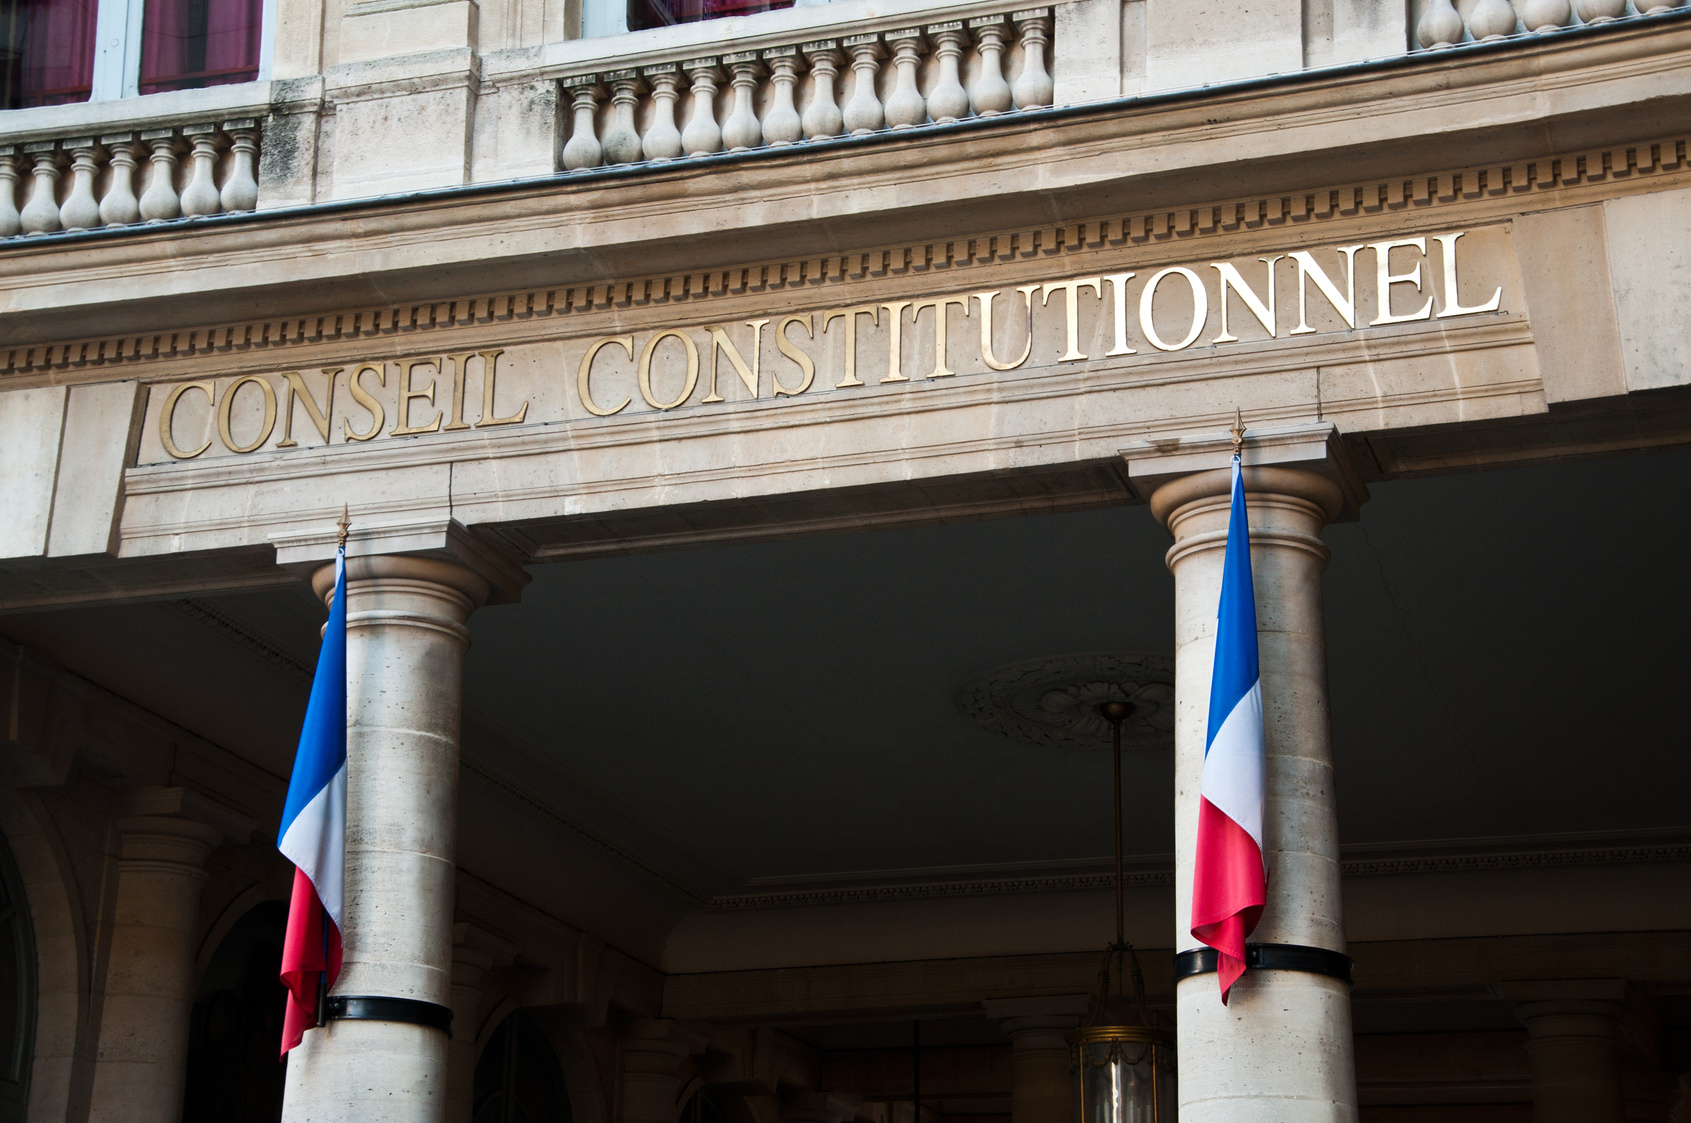 conseil contitutionel  Paris